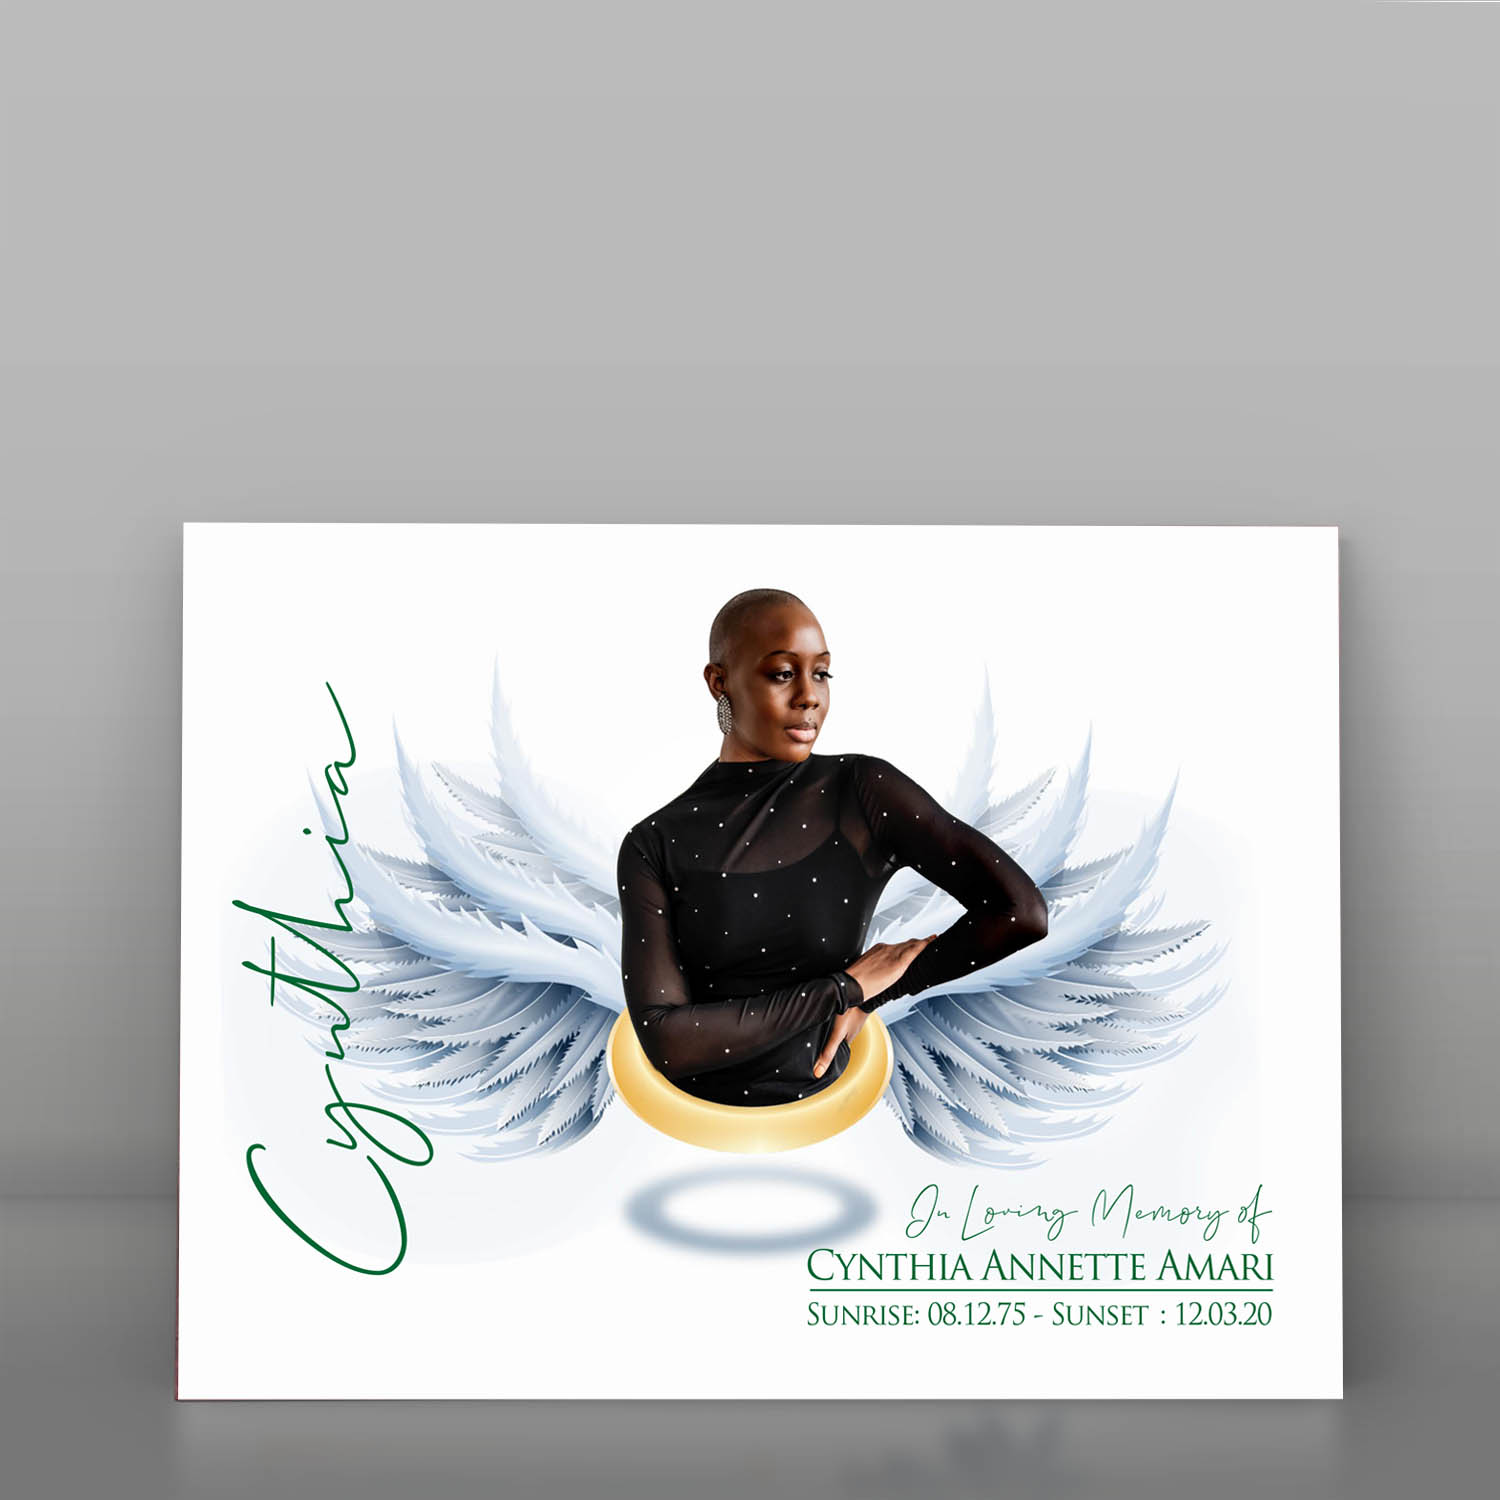 Funeral booklet design, funeral booklet print, order of service booklet, order of service print, funeral booklet themes, templates, memorial booklet, funeral programme, funeral printing, funeral order of service booklets design and print, memories funeral booklets, memories funeral booklets, obituary, funeral banner, funeral bookmark, motion gallery, UK nationwide delivery